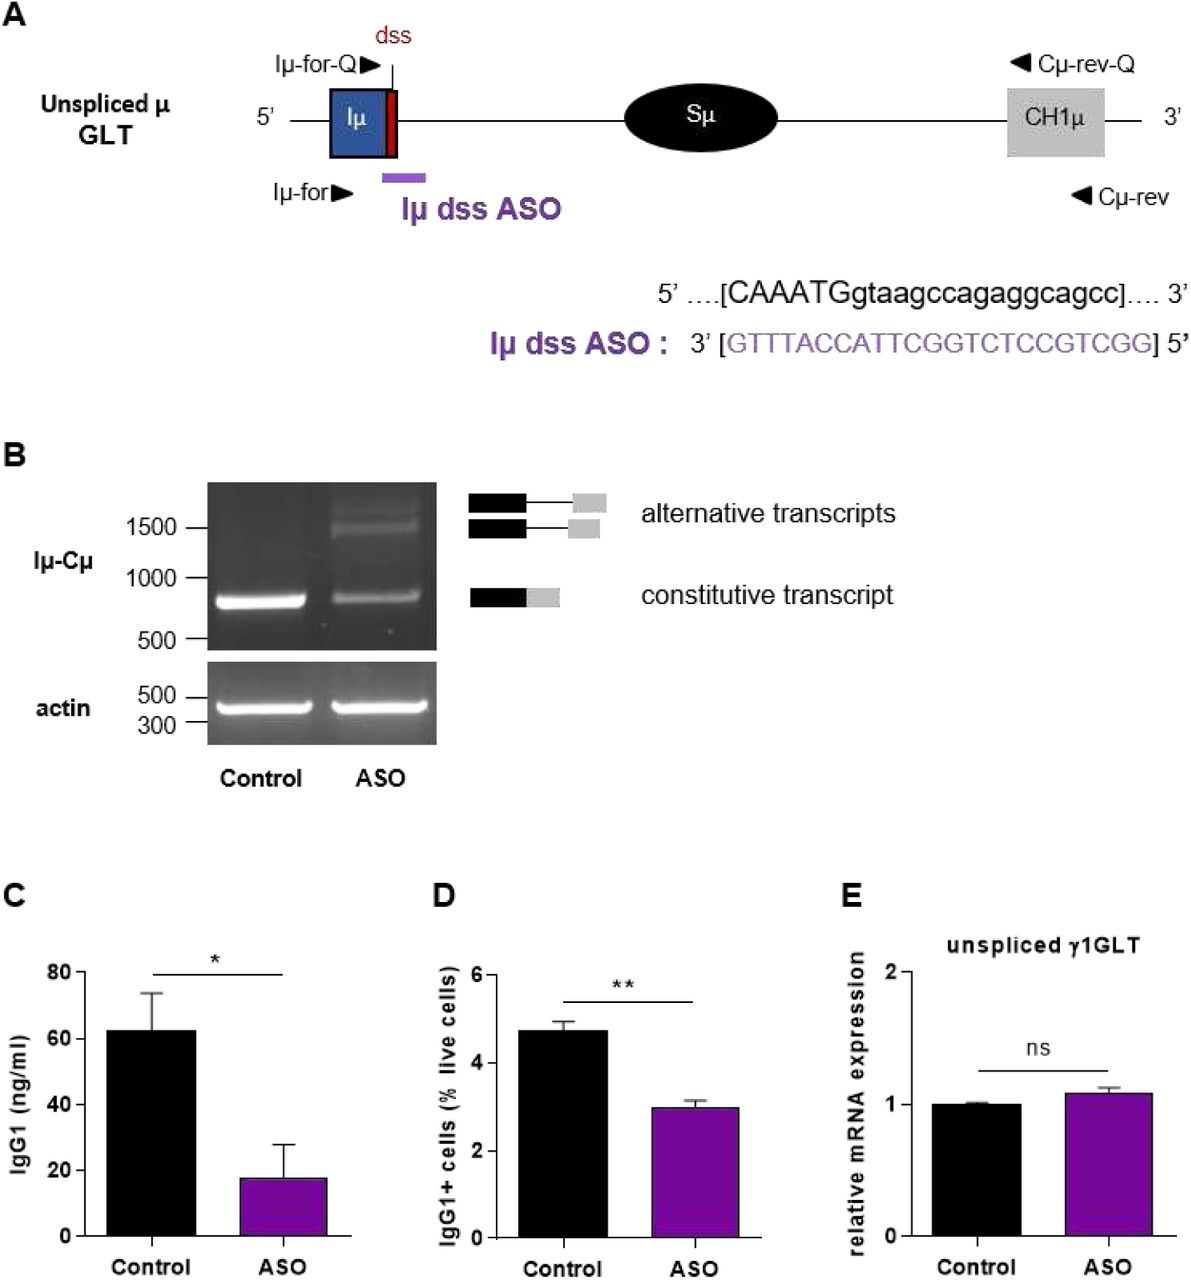 """Defective IgG1 class switching in B cells treated by Iμ exon dss ASO (A) Antisense oligonucleotide targeting the donor splice site of Iμ exon (Iμ dss ASO) was designed and synthetized as """"vivo-morpholino ASO"""" permitting passive administration of ASO in the cells (Gene Tools, LLC). Targeted μ GLT (uppercase: exon sequence; lowercase: intron sequence) and Iμ dss ASO sequences are indicated. Iμ, μ I exon; Sμ, μ switch region; CH1μ, μ constant exon 1; dss, donor splice site. (B-E) Splenic B cells were isolated from C57BL/6 mice, stimulated with LPS + IL4 and treated with 2 μM Iμ dss ASO or an irrelevant control ASO for 2 days (B, E) or 3 days (C, D). (B) Constitutively and alternatively spliced μ transcripts analysed as described in figure 2 using Iμ-for and Cμ-rev primers, described in schema A. (C) Quantification of IgG1 in culture supernatants by ELISA. (D) Percentage of IgG1 positive cells determined by flow cytometry as described in figure 2 . (E) Unspliced γ1 GLTs expression monitored as described in figure 2 . (C-E) Data are means ± SEM, n=3 for each group. Unpaired two-tailed Student's t test was used to determine significance. ns: non significant, * P"""